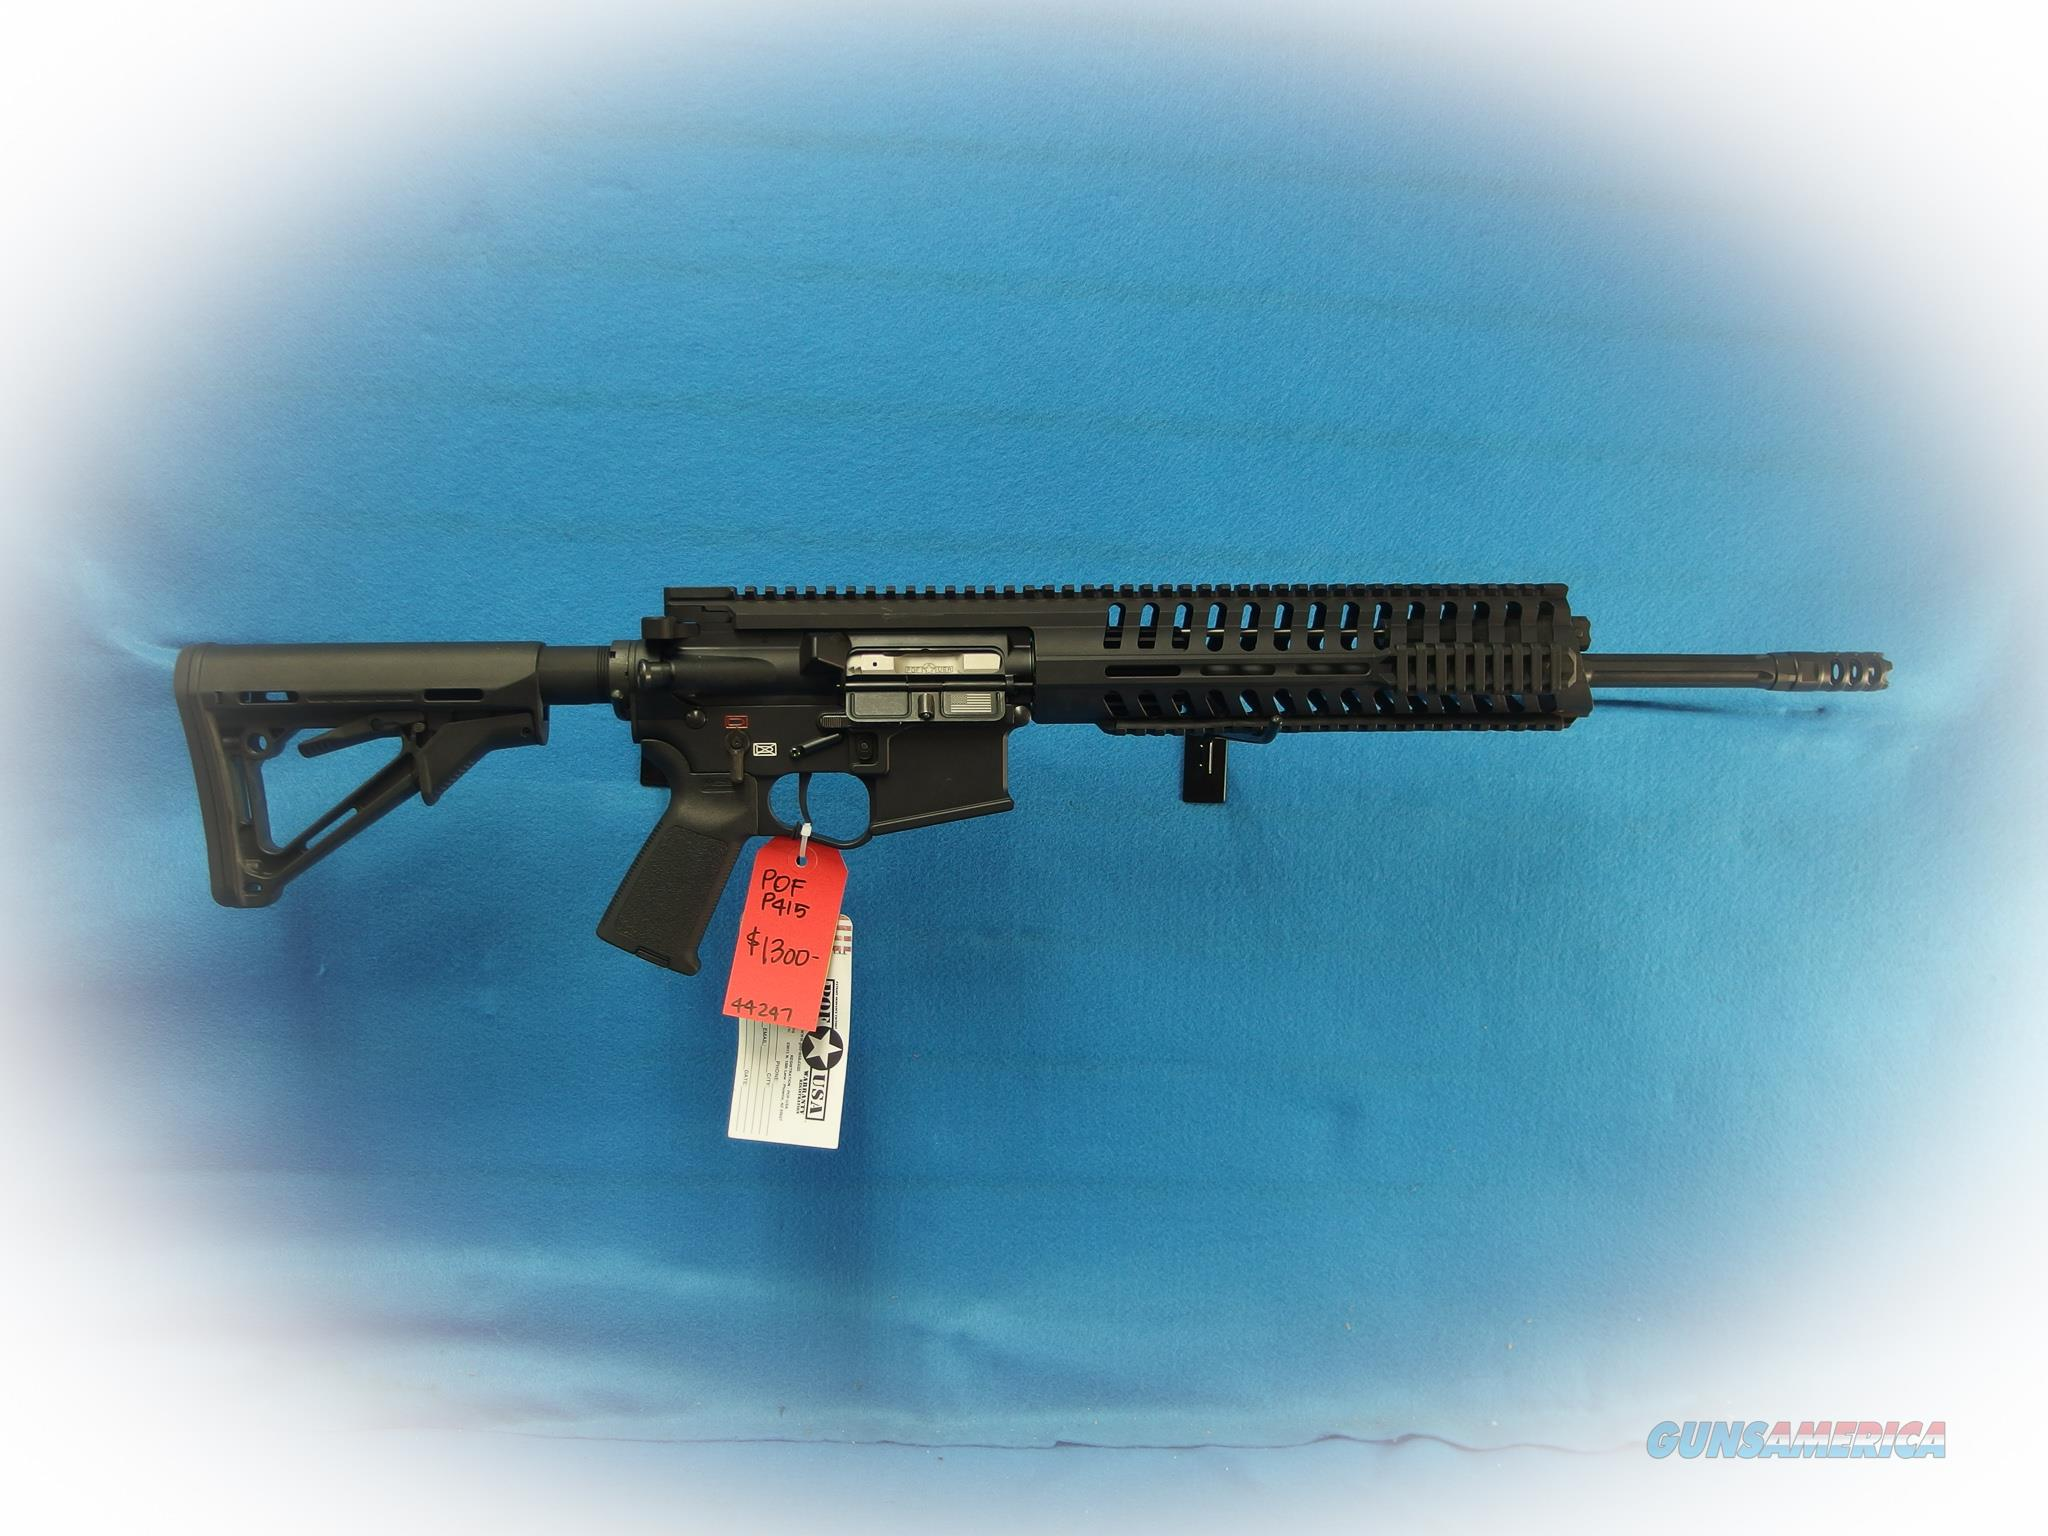 POF Model 415 Gas Piston 5.56mm Semi Auto Rifle **New** On Sale  Guns > Rifles > AR-15 Rifles - Small Manufacturers > Complete Rifle